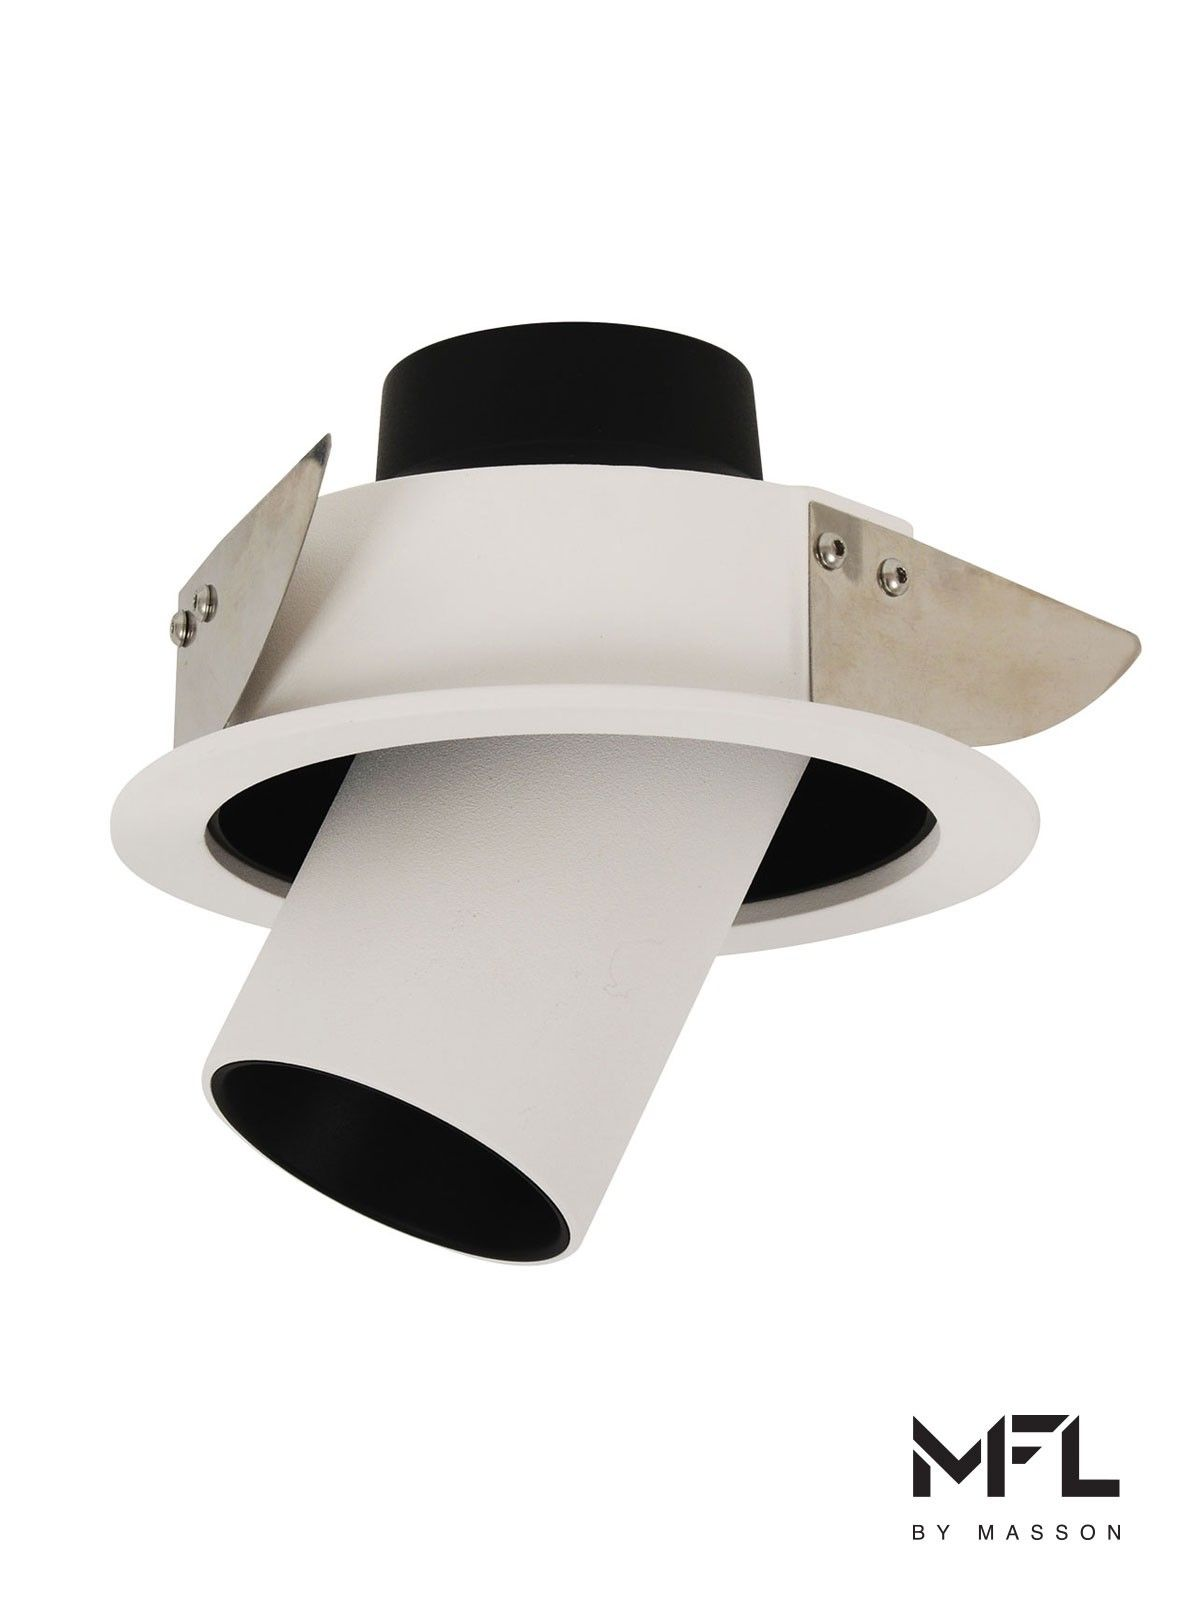 Mfl By Masson Titan Adjustable 700 Lumens Led White Downlight In